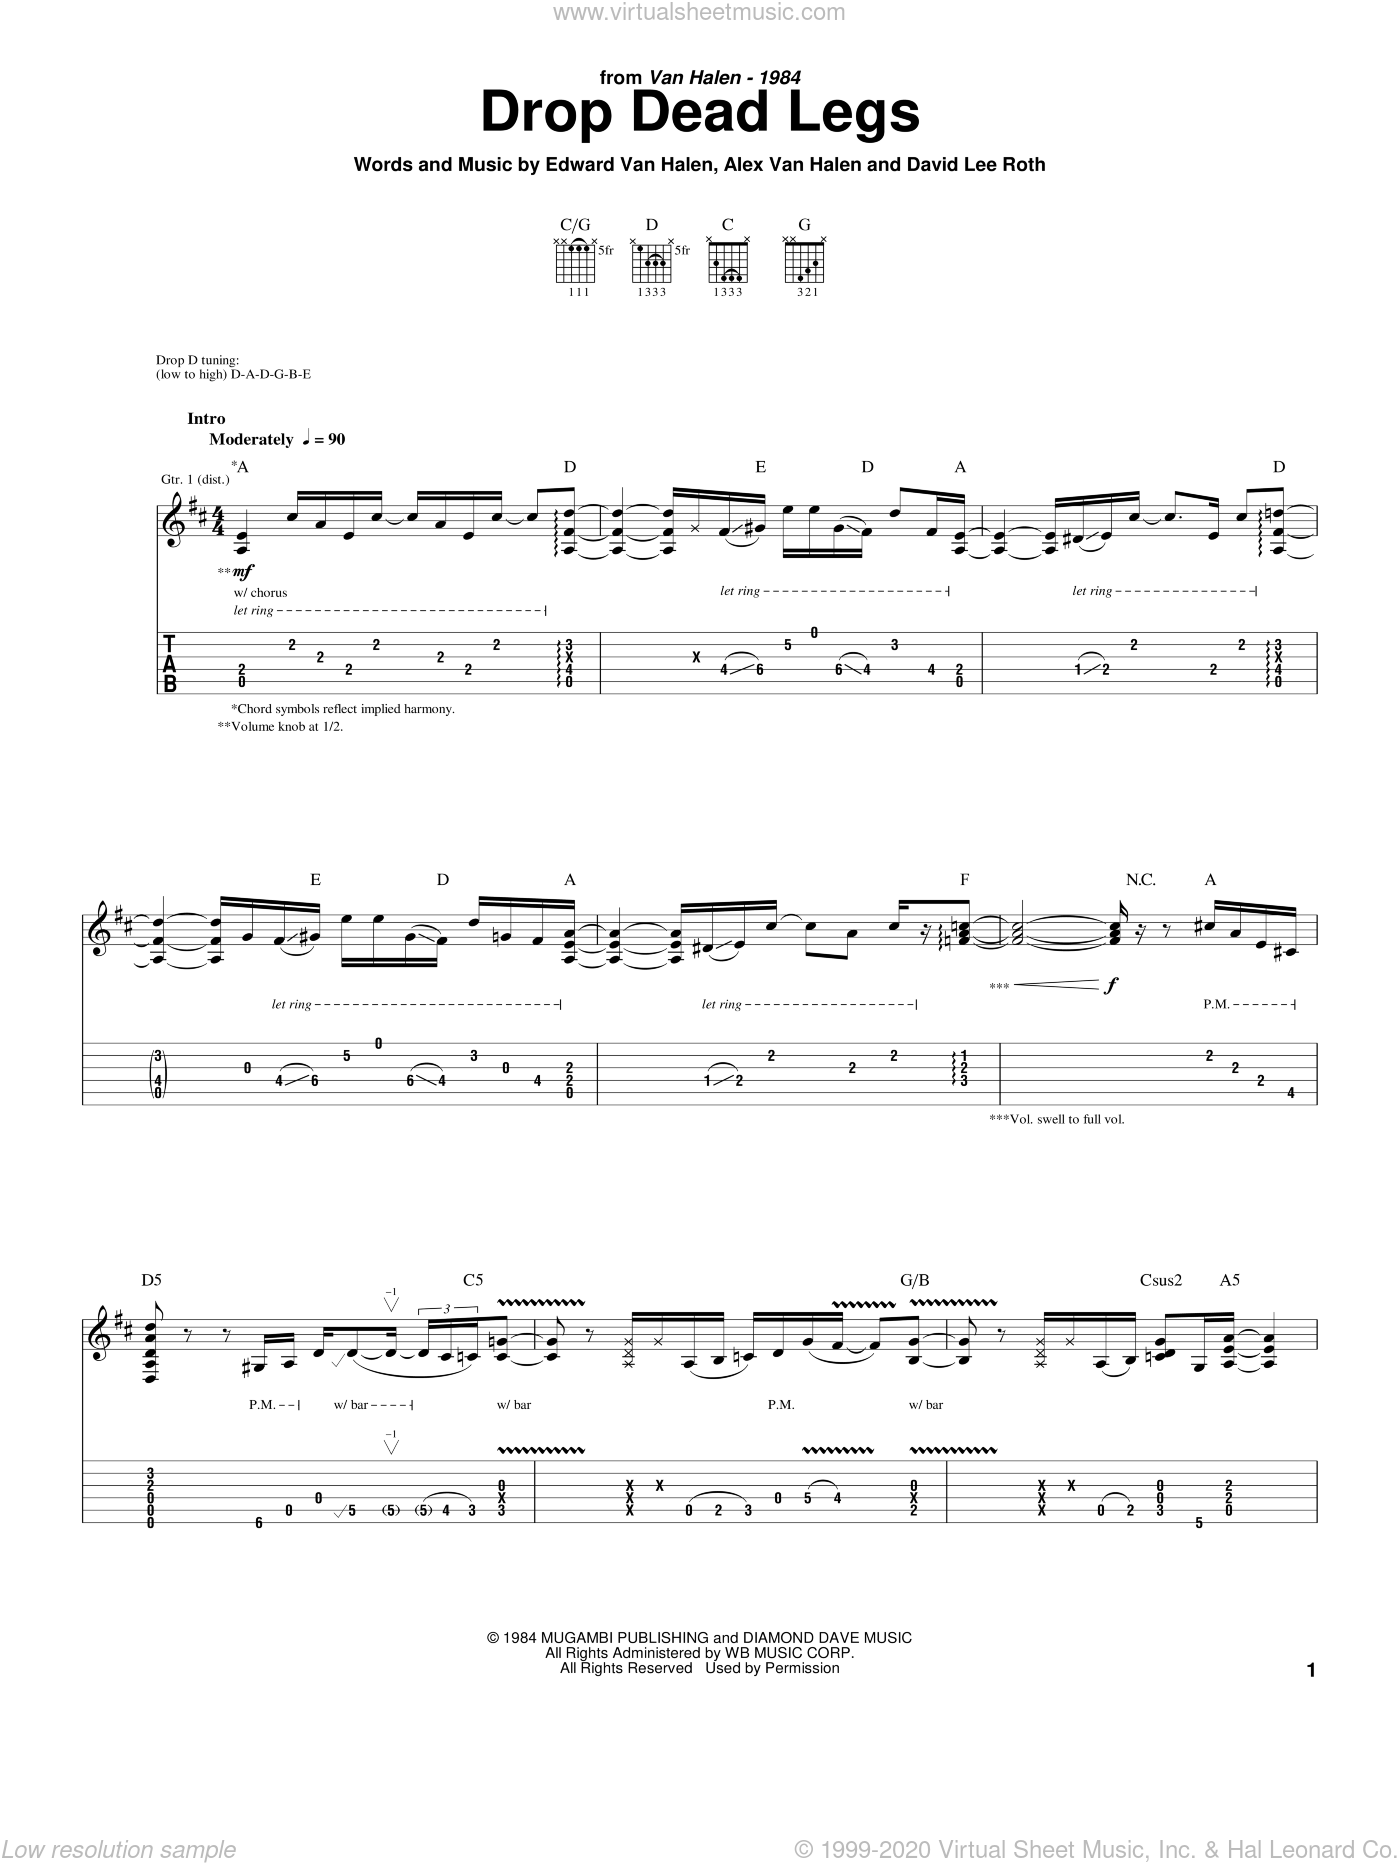 Drop Dead Legs sheet music for guitar (tablature) by Edward Van Halen, Alex Van Halen and David Lee Roth. Score Image Preview.